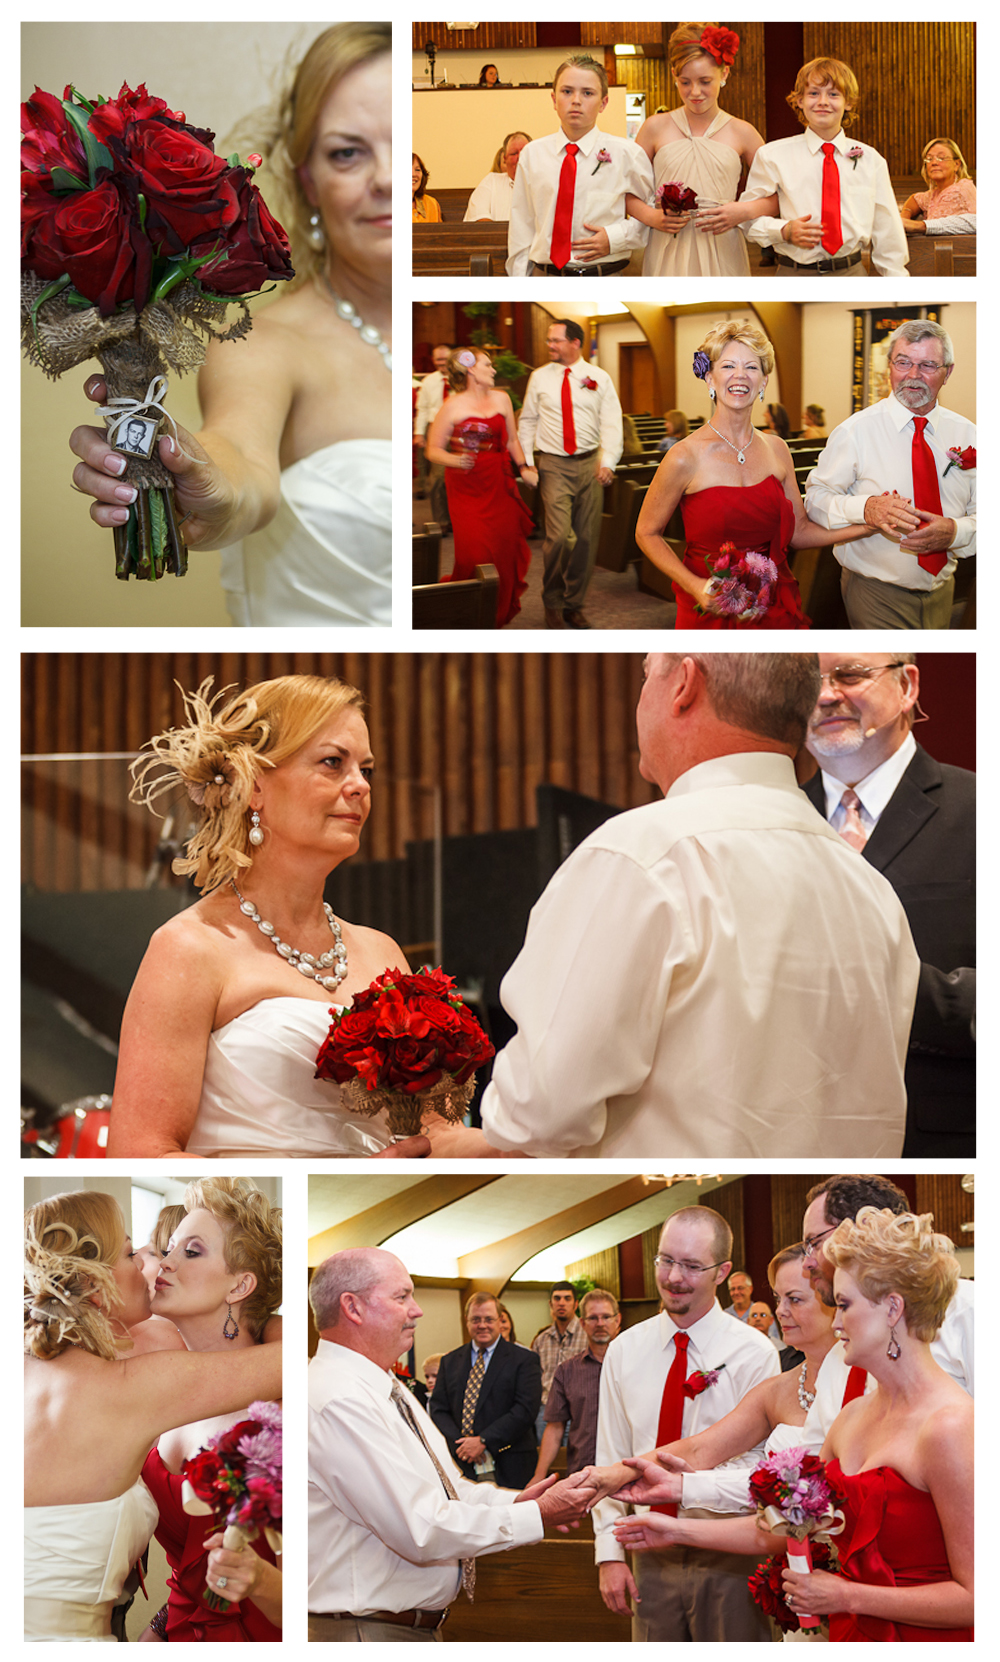 Pam+Robert-Collage2.jpg